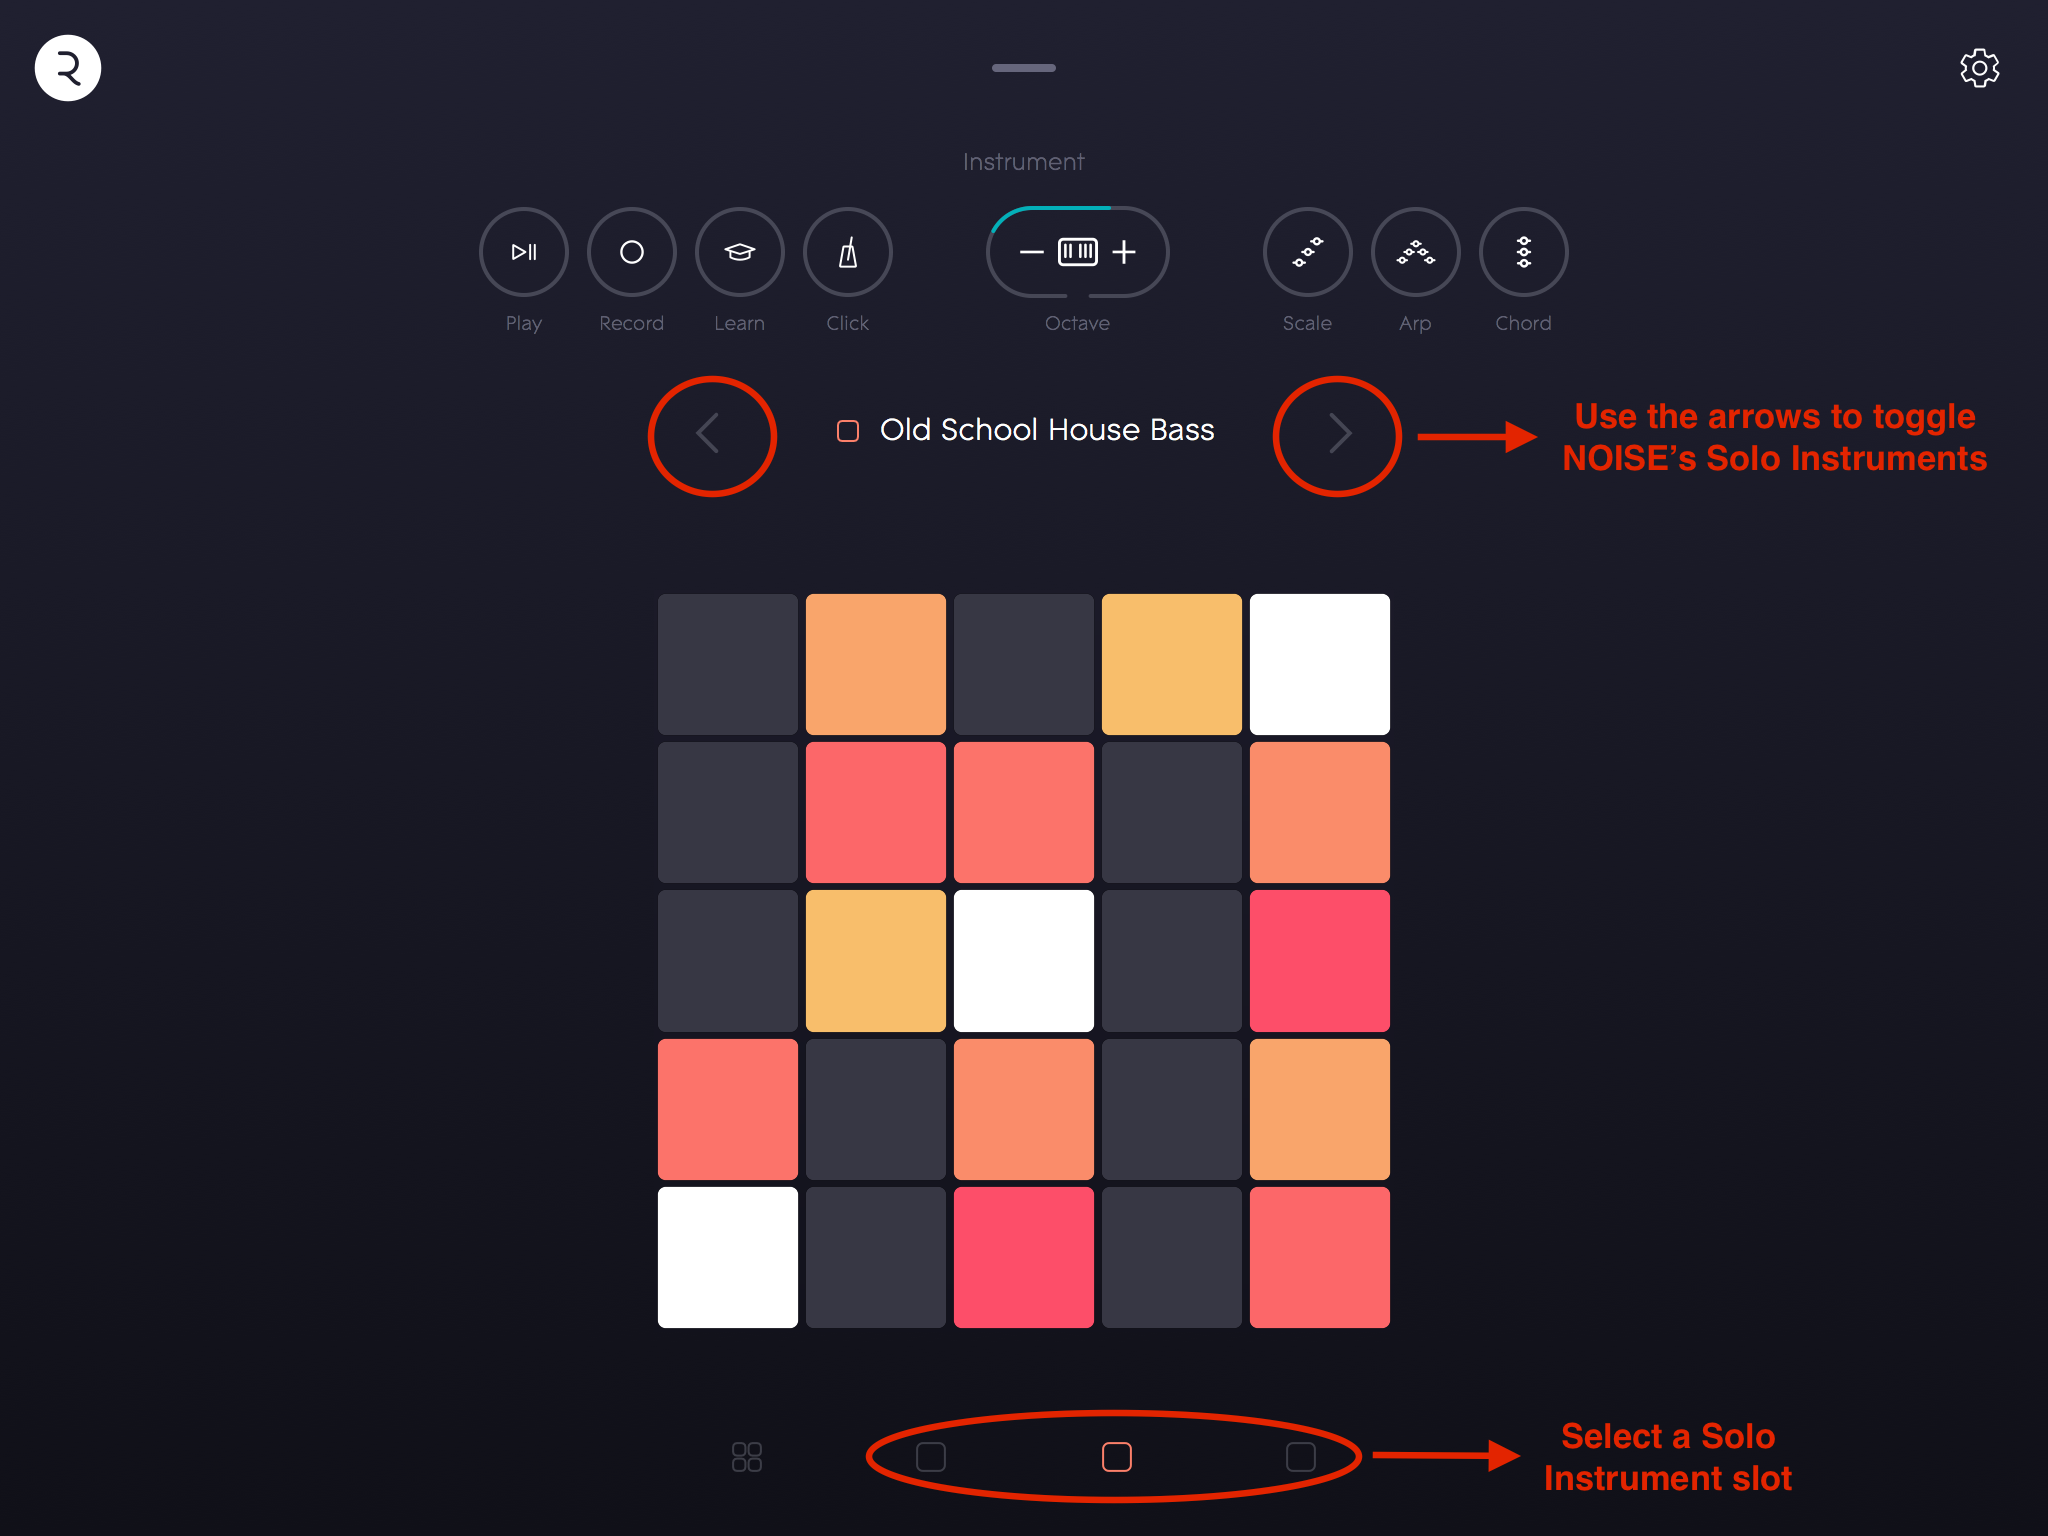 NOISE – Instrument View – navigating Solo Instruments